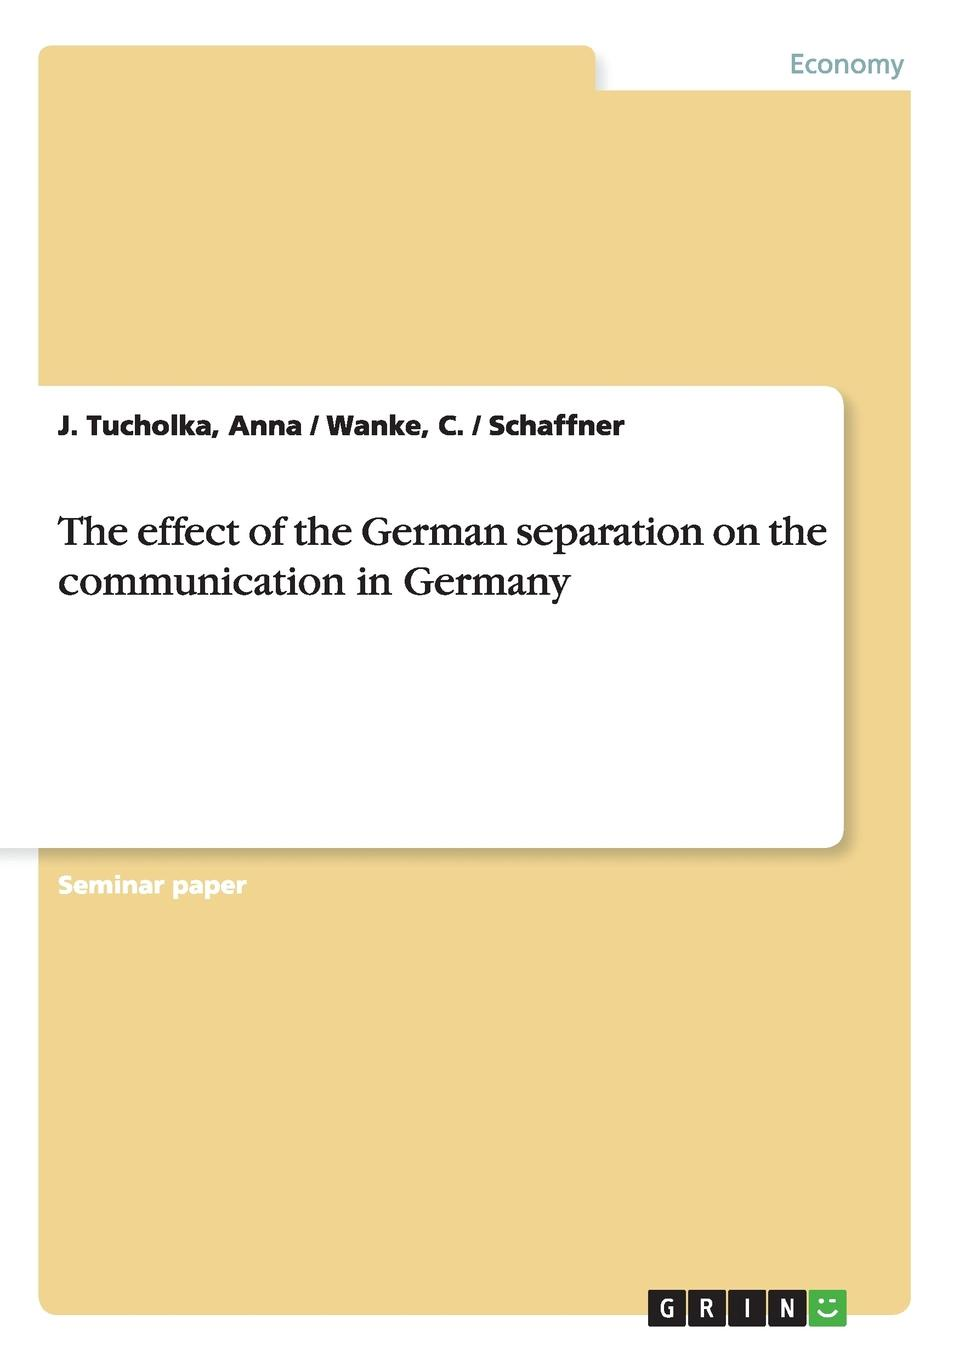 Anna Tucholka, C. Wanke, J. Schaffner The effect of the German separation on the communication in Germany the relationship between communication satisfaction and teamworking